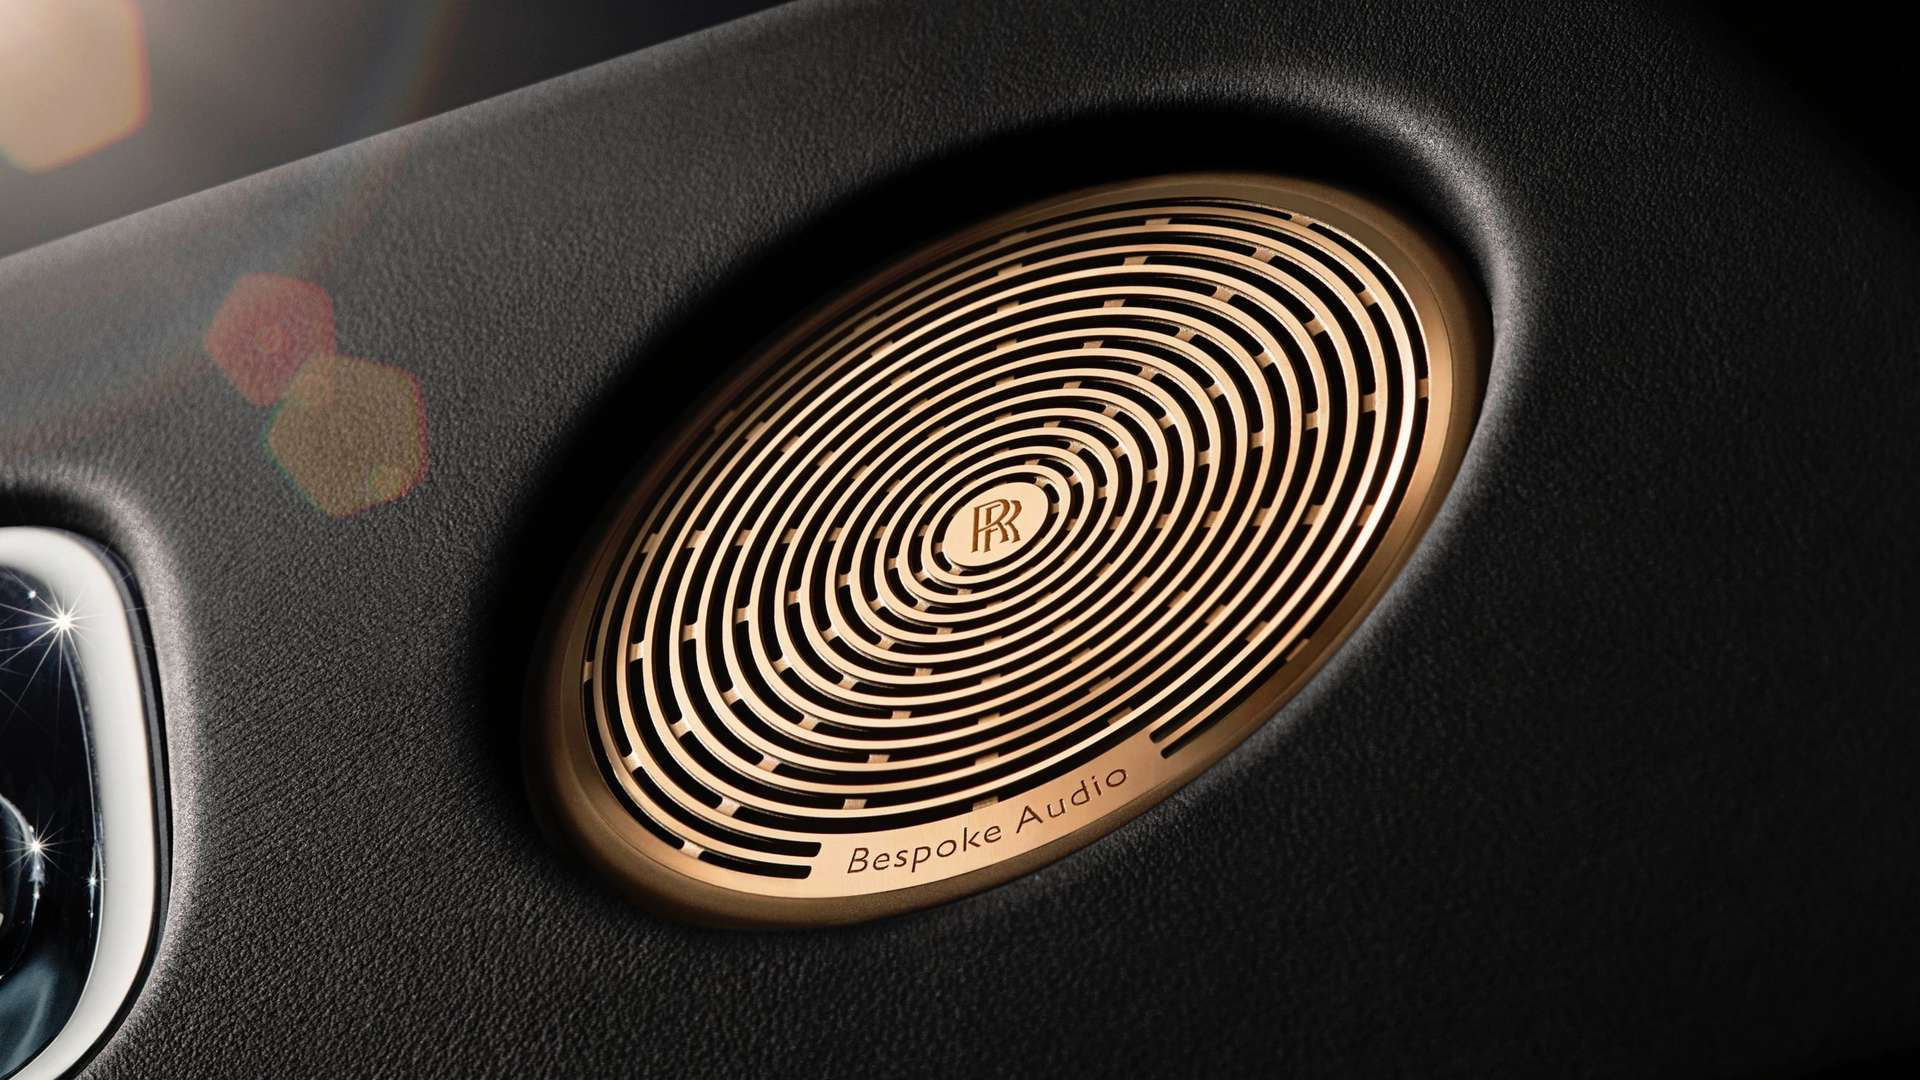 A close up of the bespoke audio system in a Rolls-Royce Phantom Motor Car